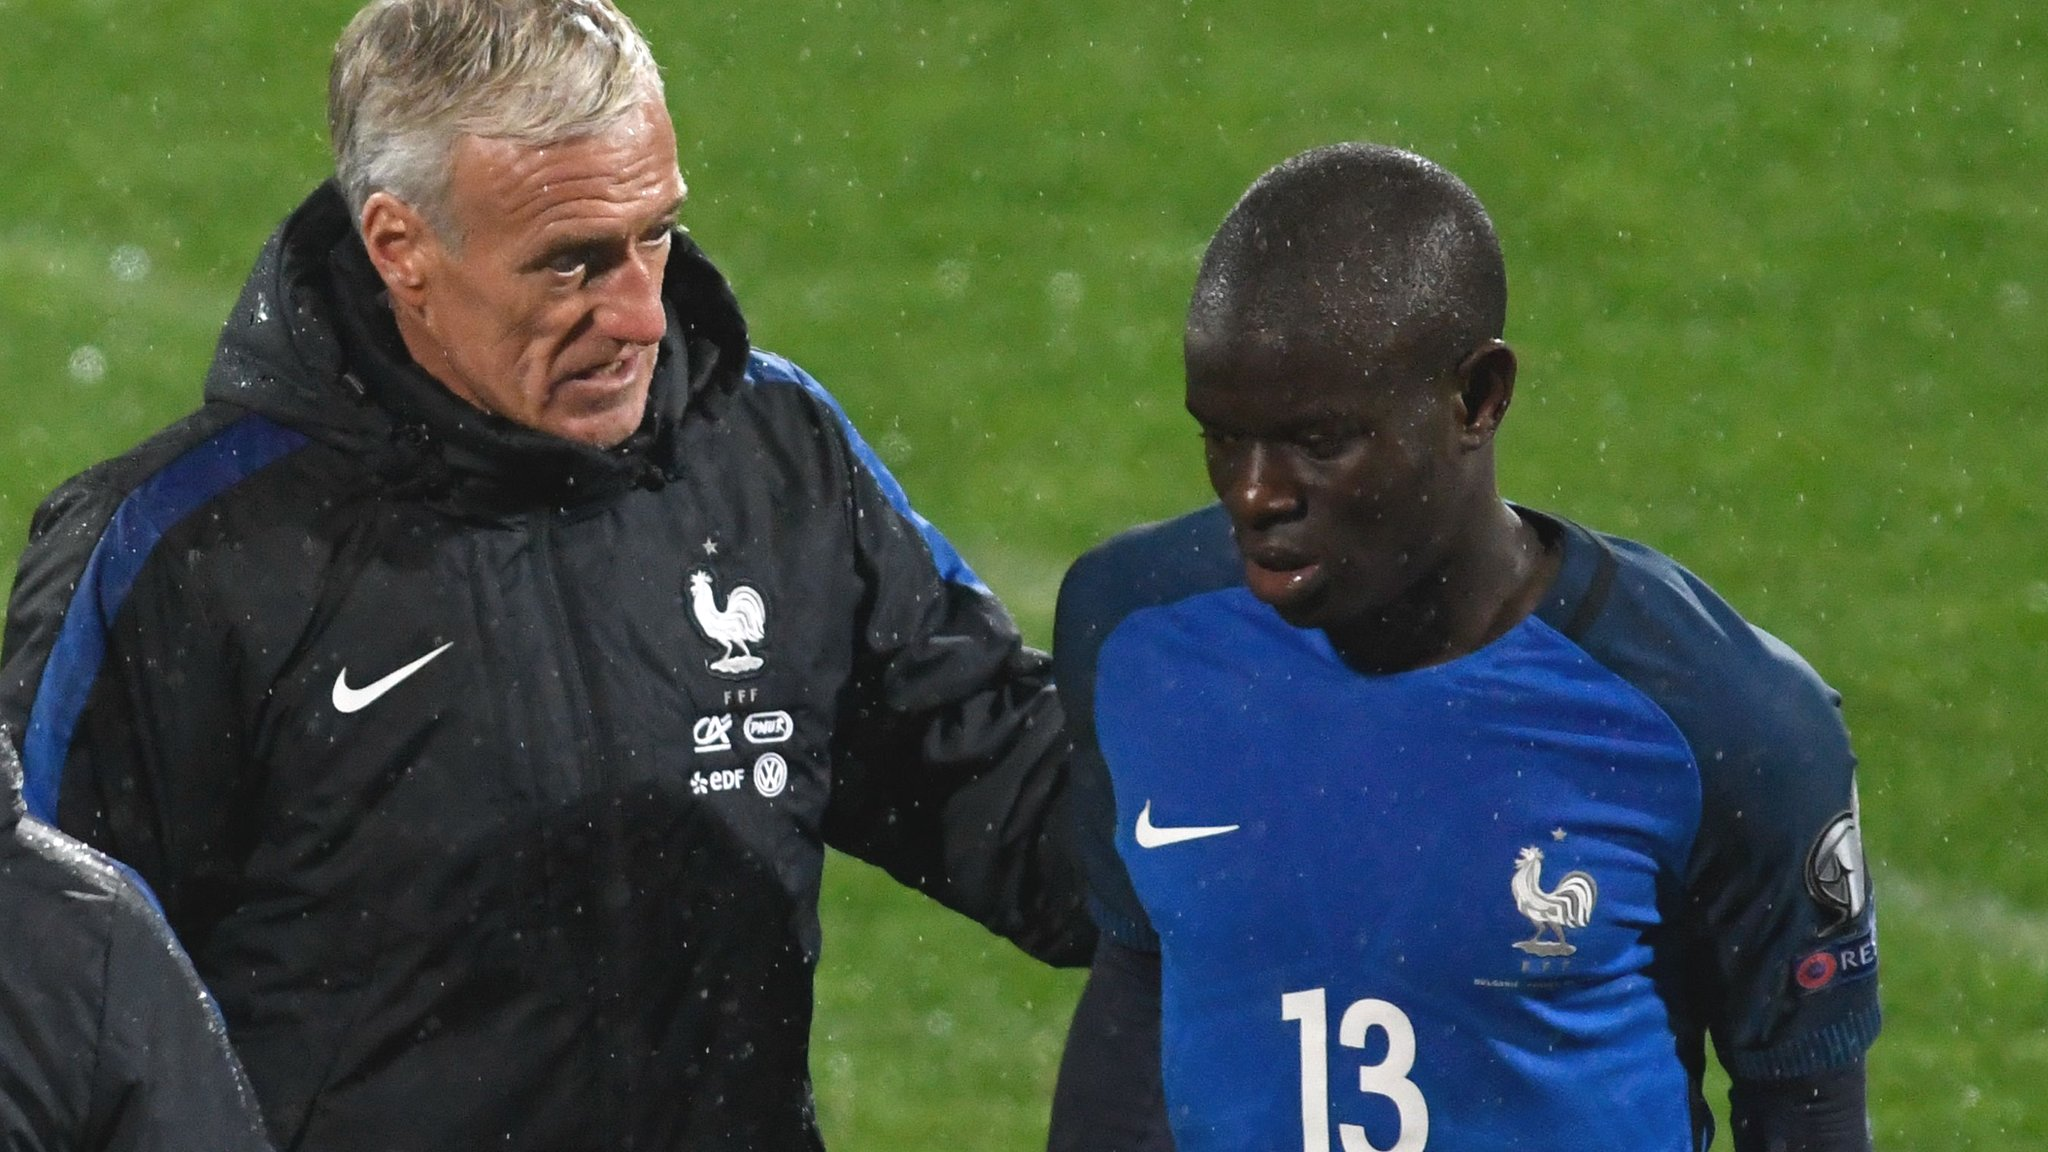 Chelsea's Kante out for three weeks with hamstring injury